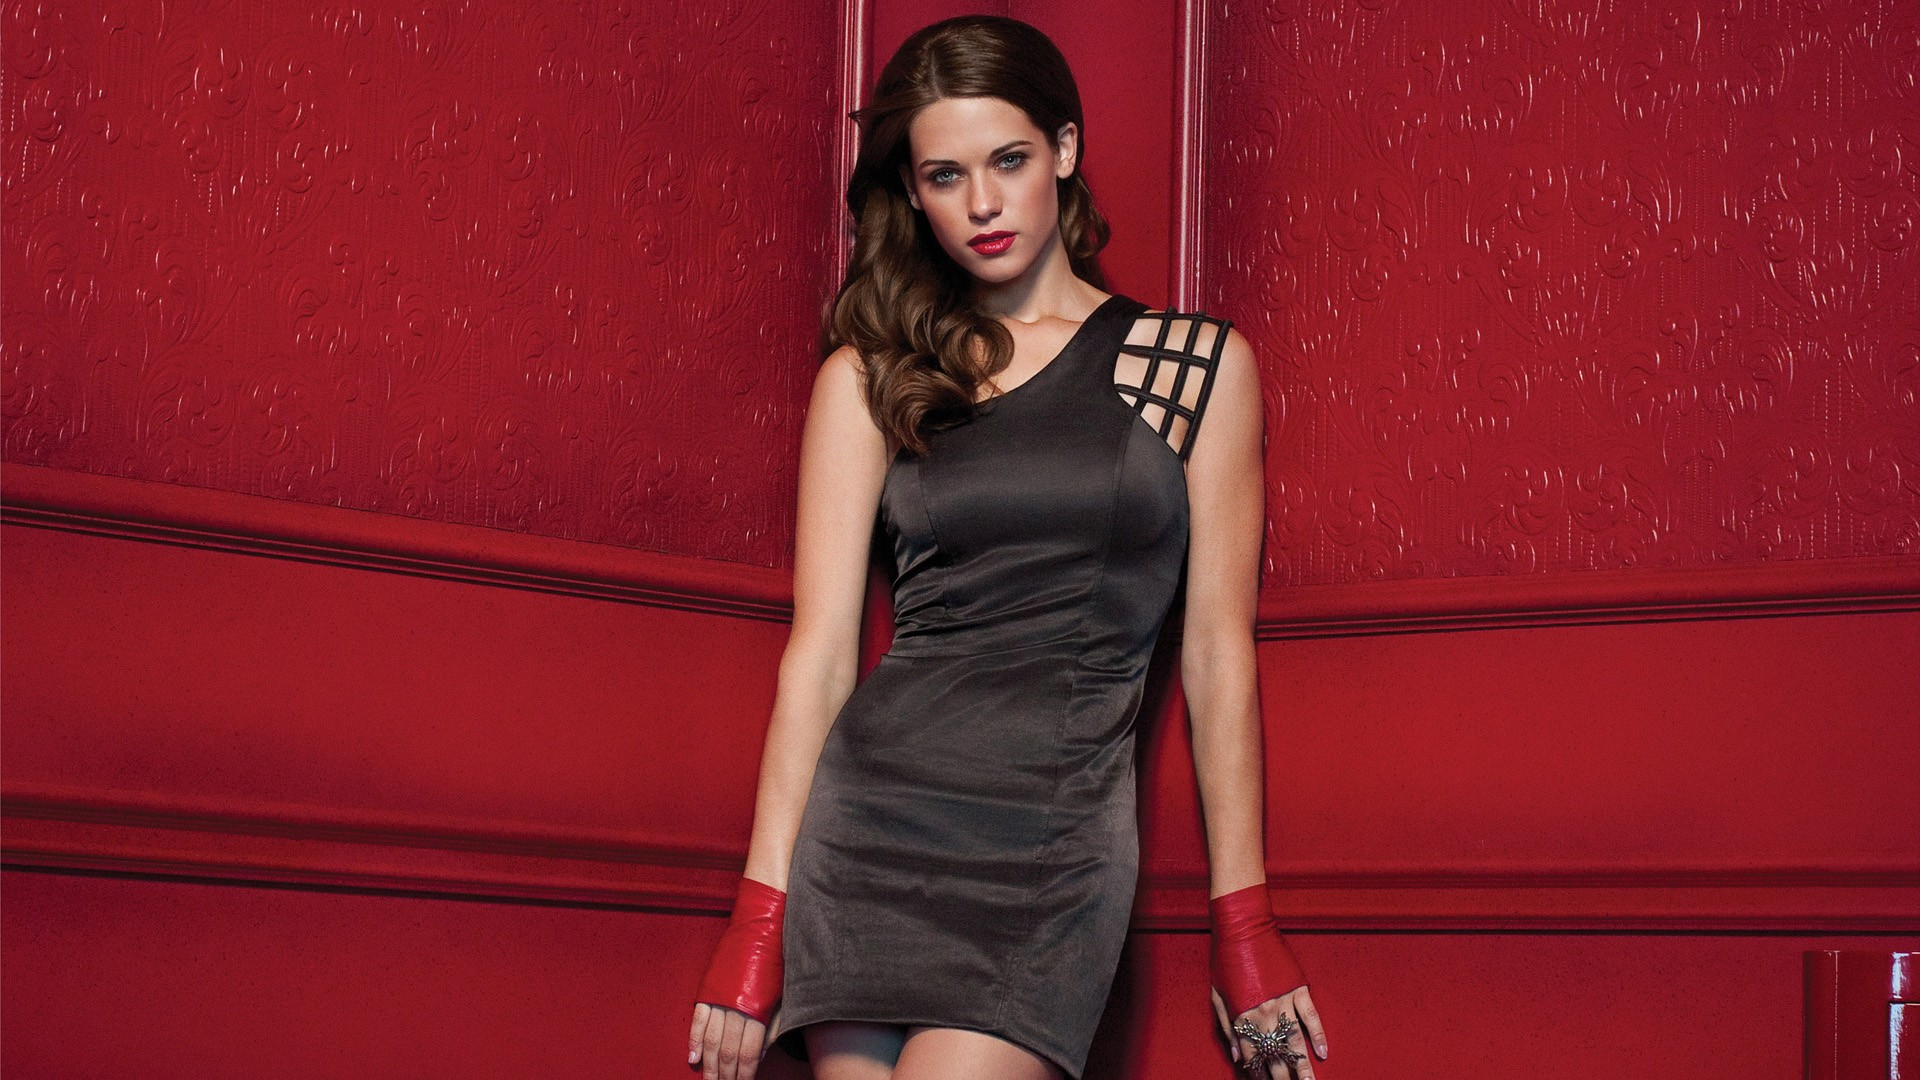 lyndsy fonseca desktop wallpaper 50334